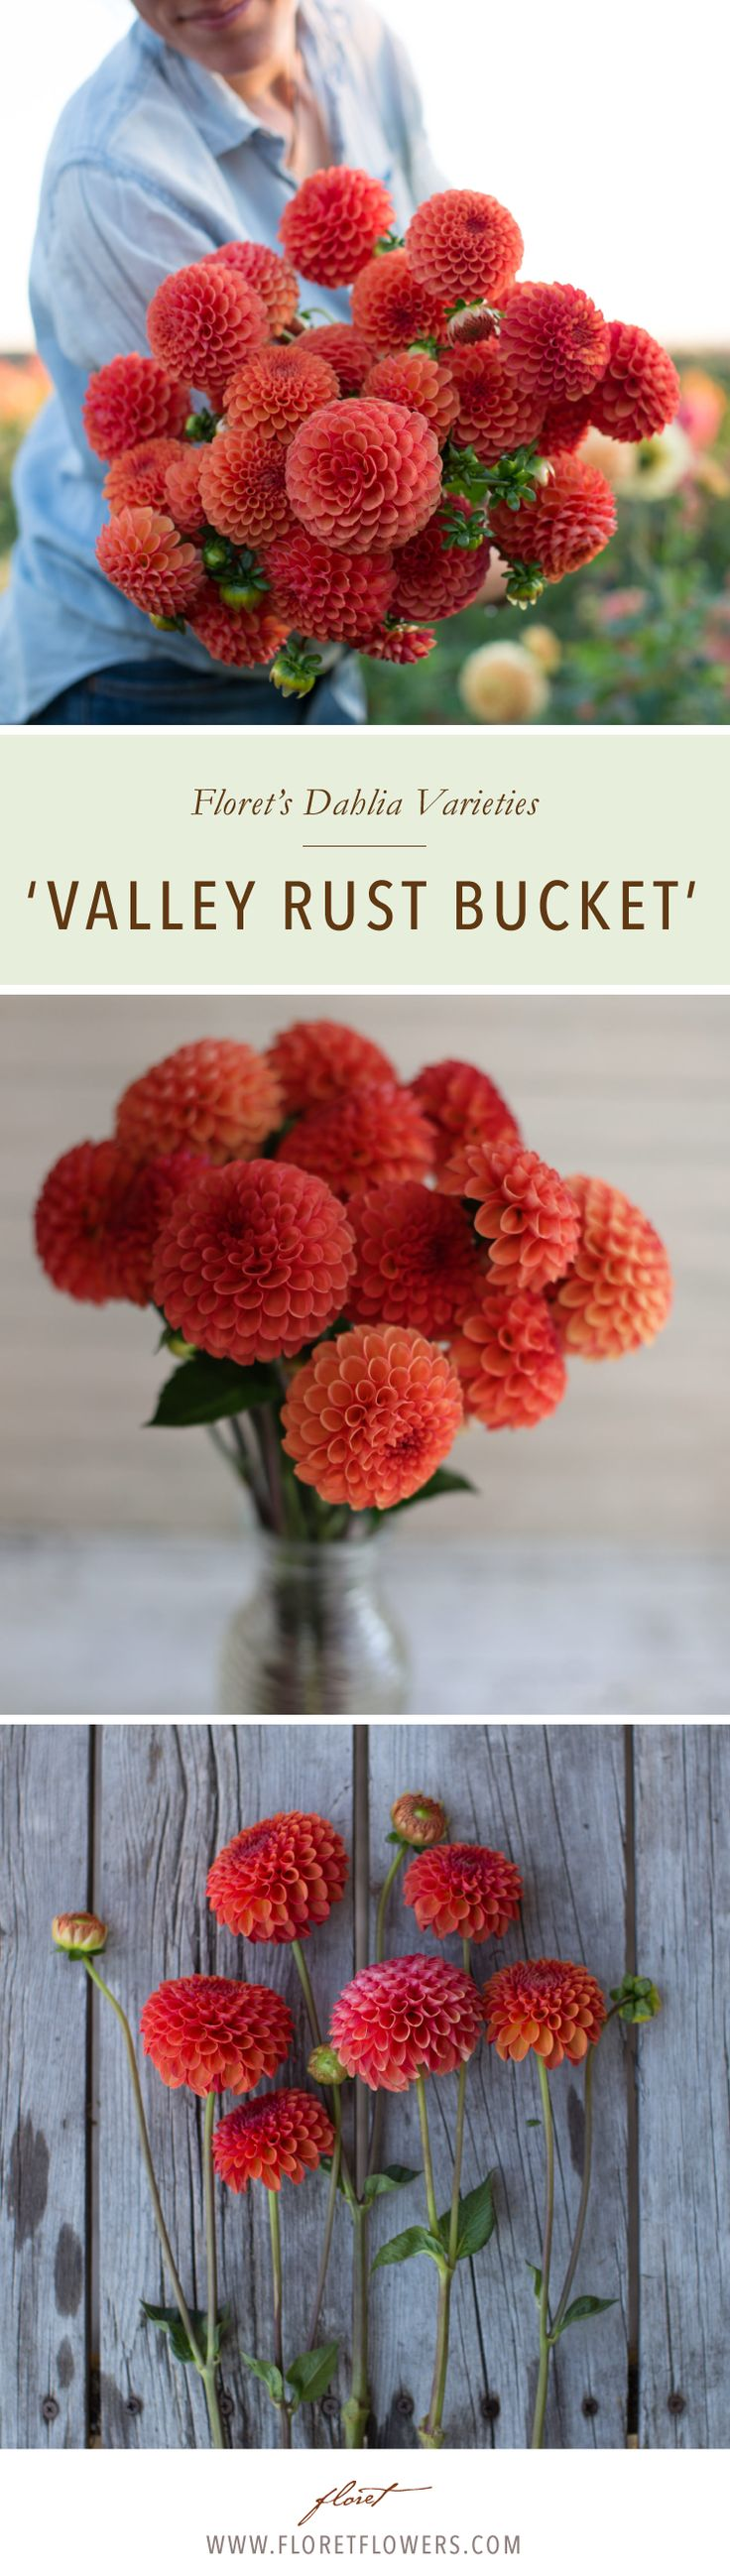 This spectacular dahlia was lovingly bred by Leone and David Smith and is a must grow. The 3 inch miniature ball shaped flowers of  'Valley Rust Bucket' are a deep rusty red-orange blend that is a favorite among our market customers and everyone who visits the garden. Tubers available from Floret.  #growfloret